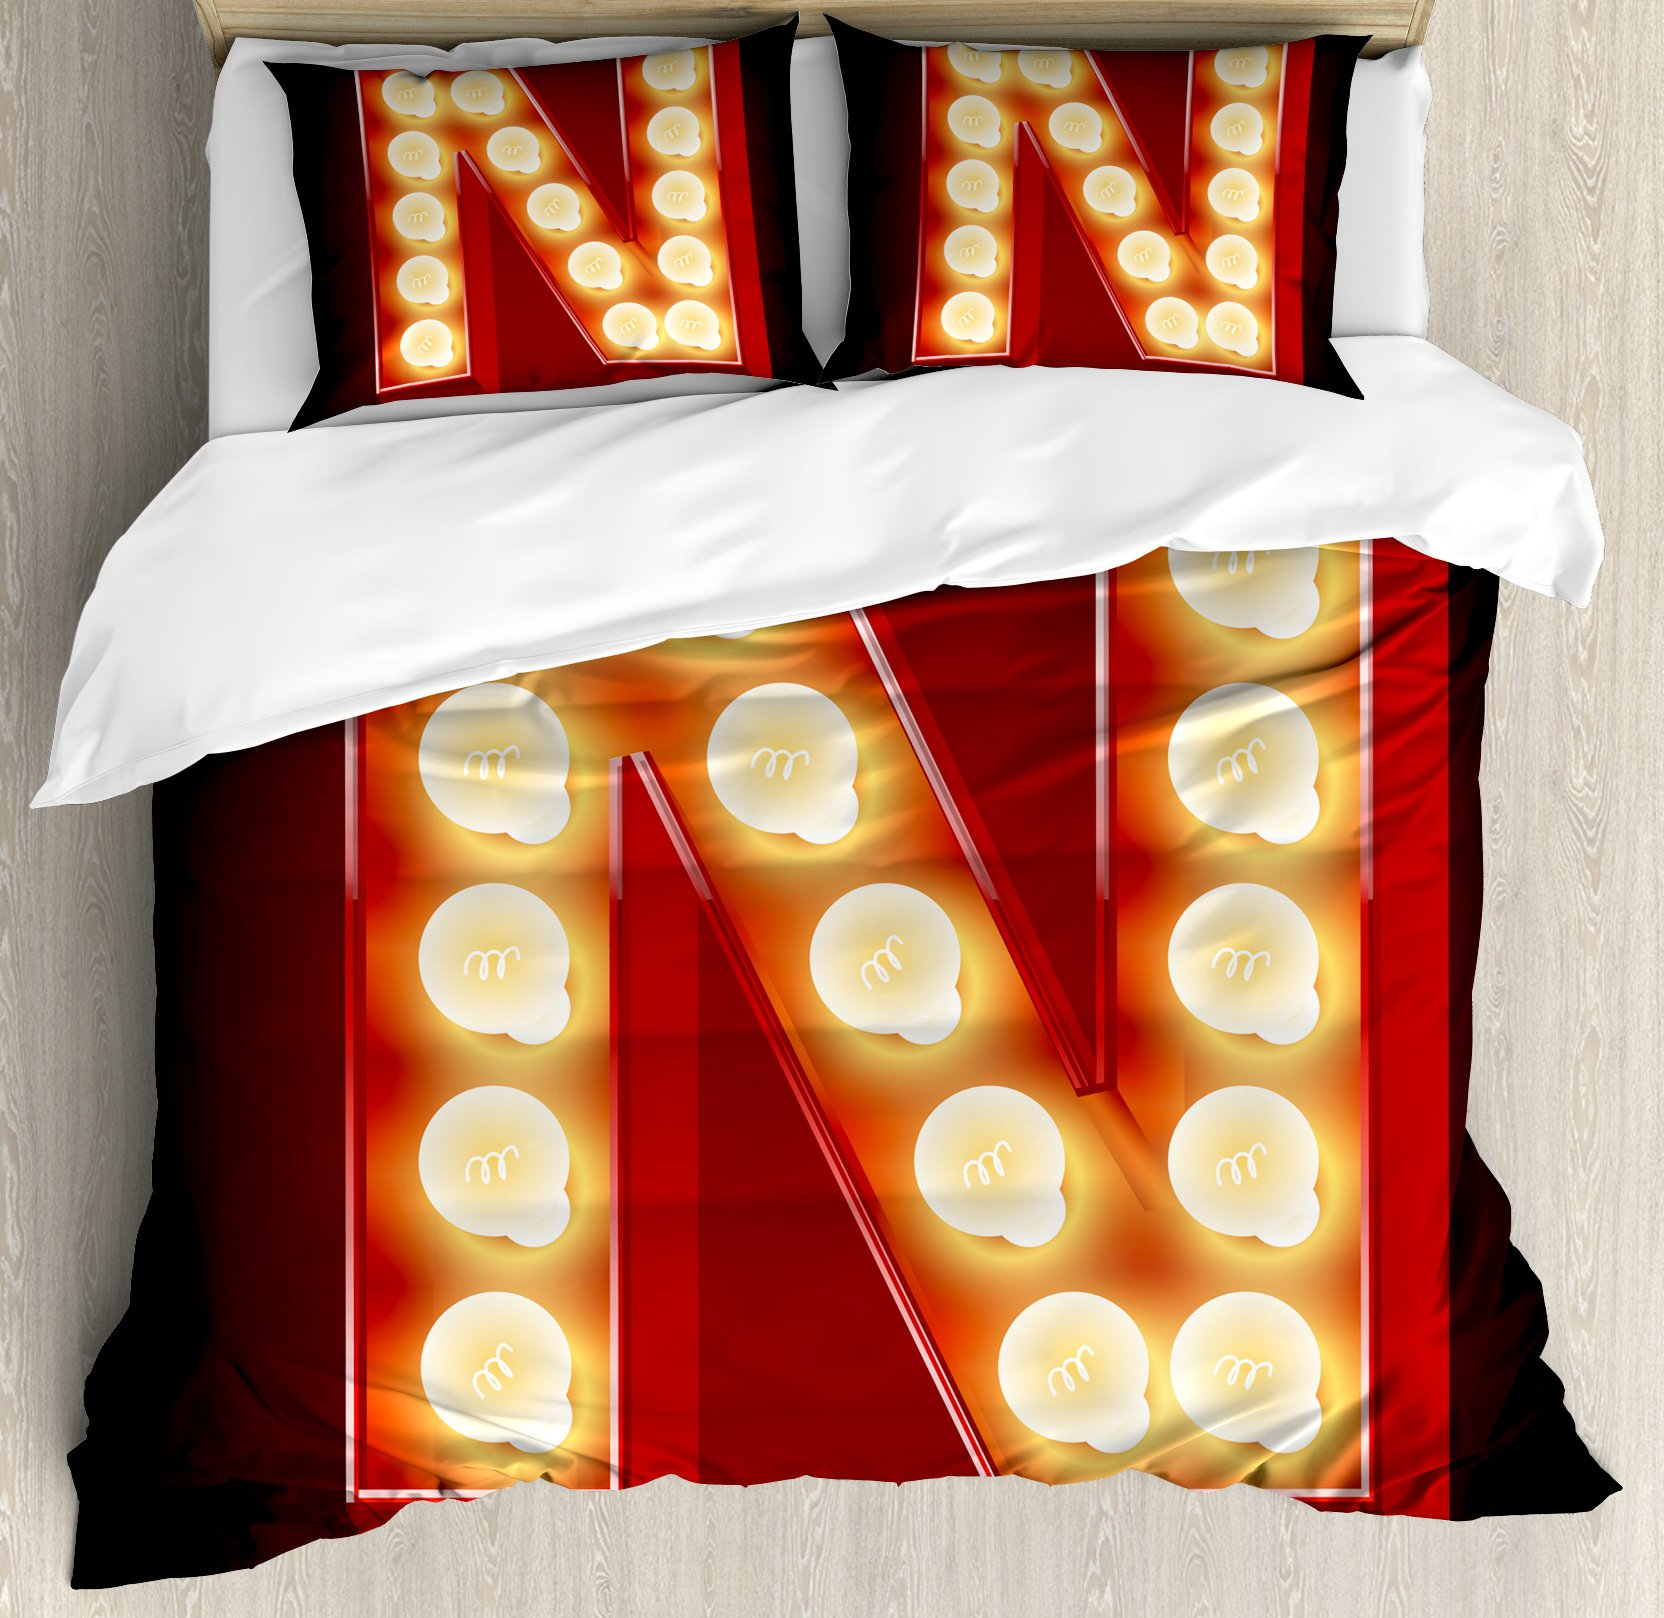 Letter N Queen Size Duvet Cover Set by Ambesonne, Old Fashioned Movie Theater Carnival Casino Entertainment Night Life, Decorative 3 Piece Bedding Set with 2 Pillow Shams, Vermilion Yellow Black